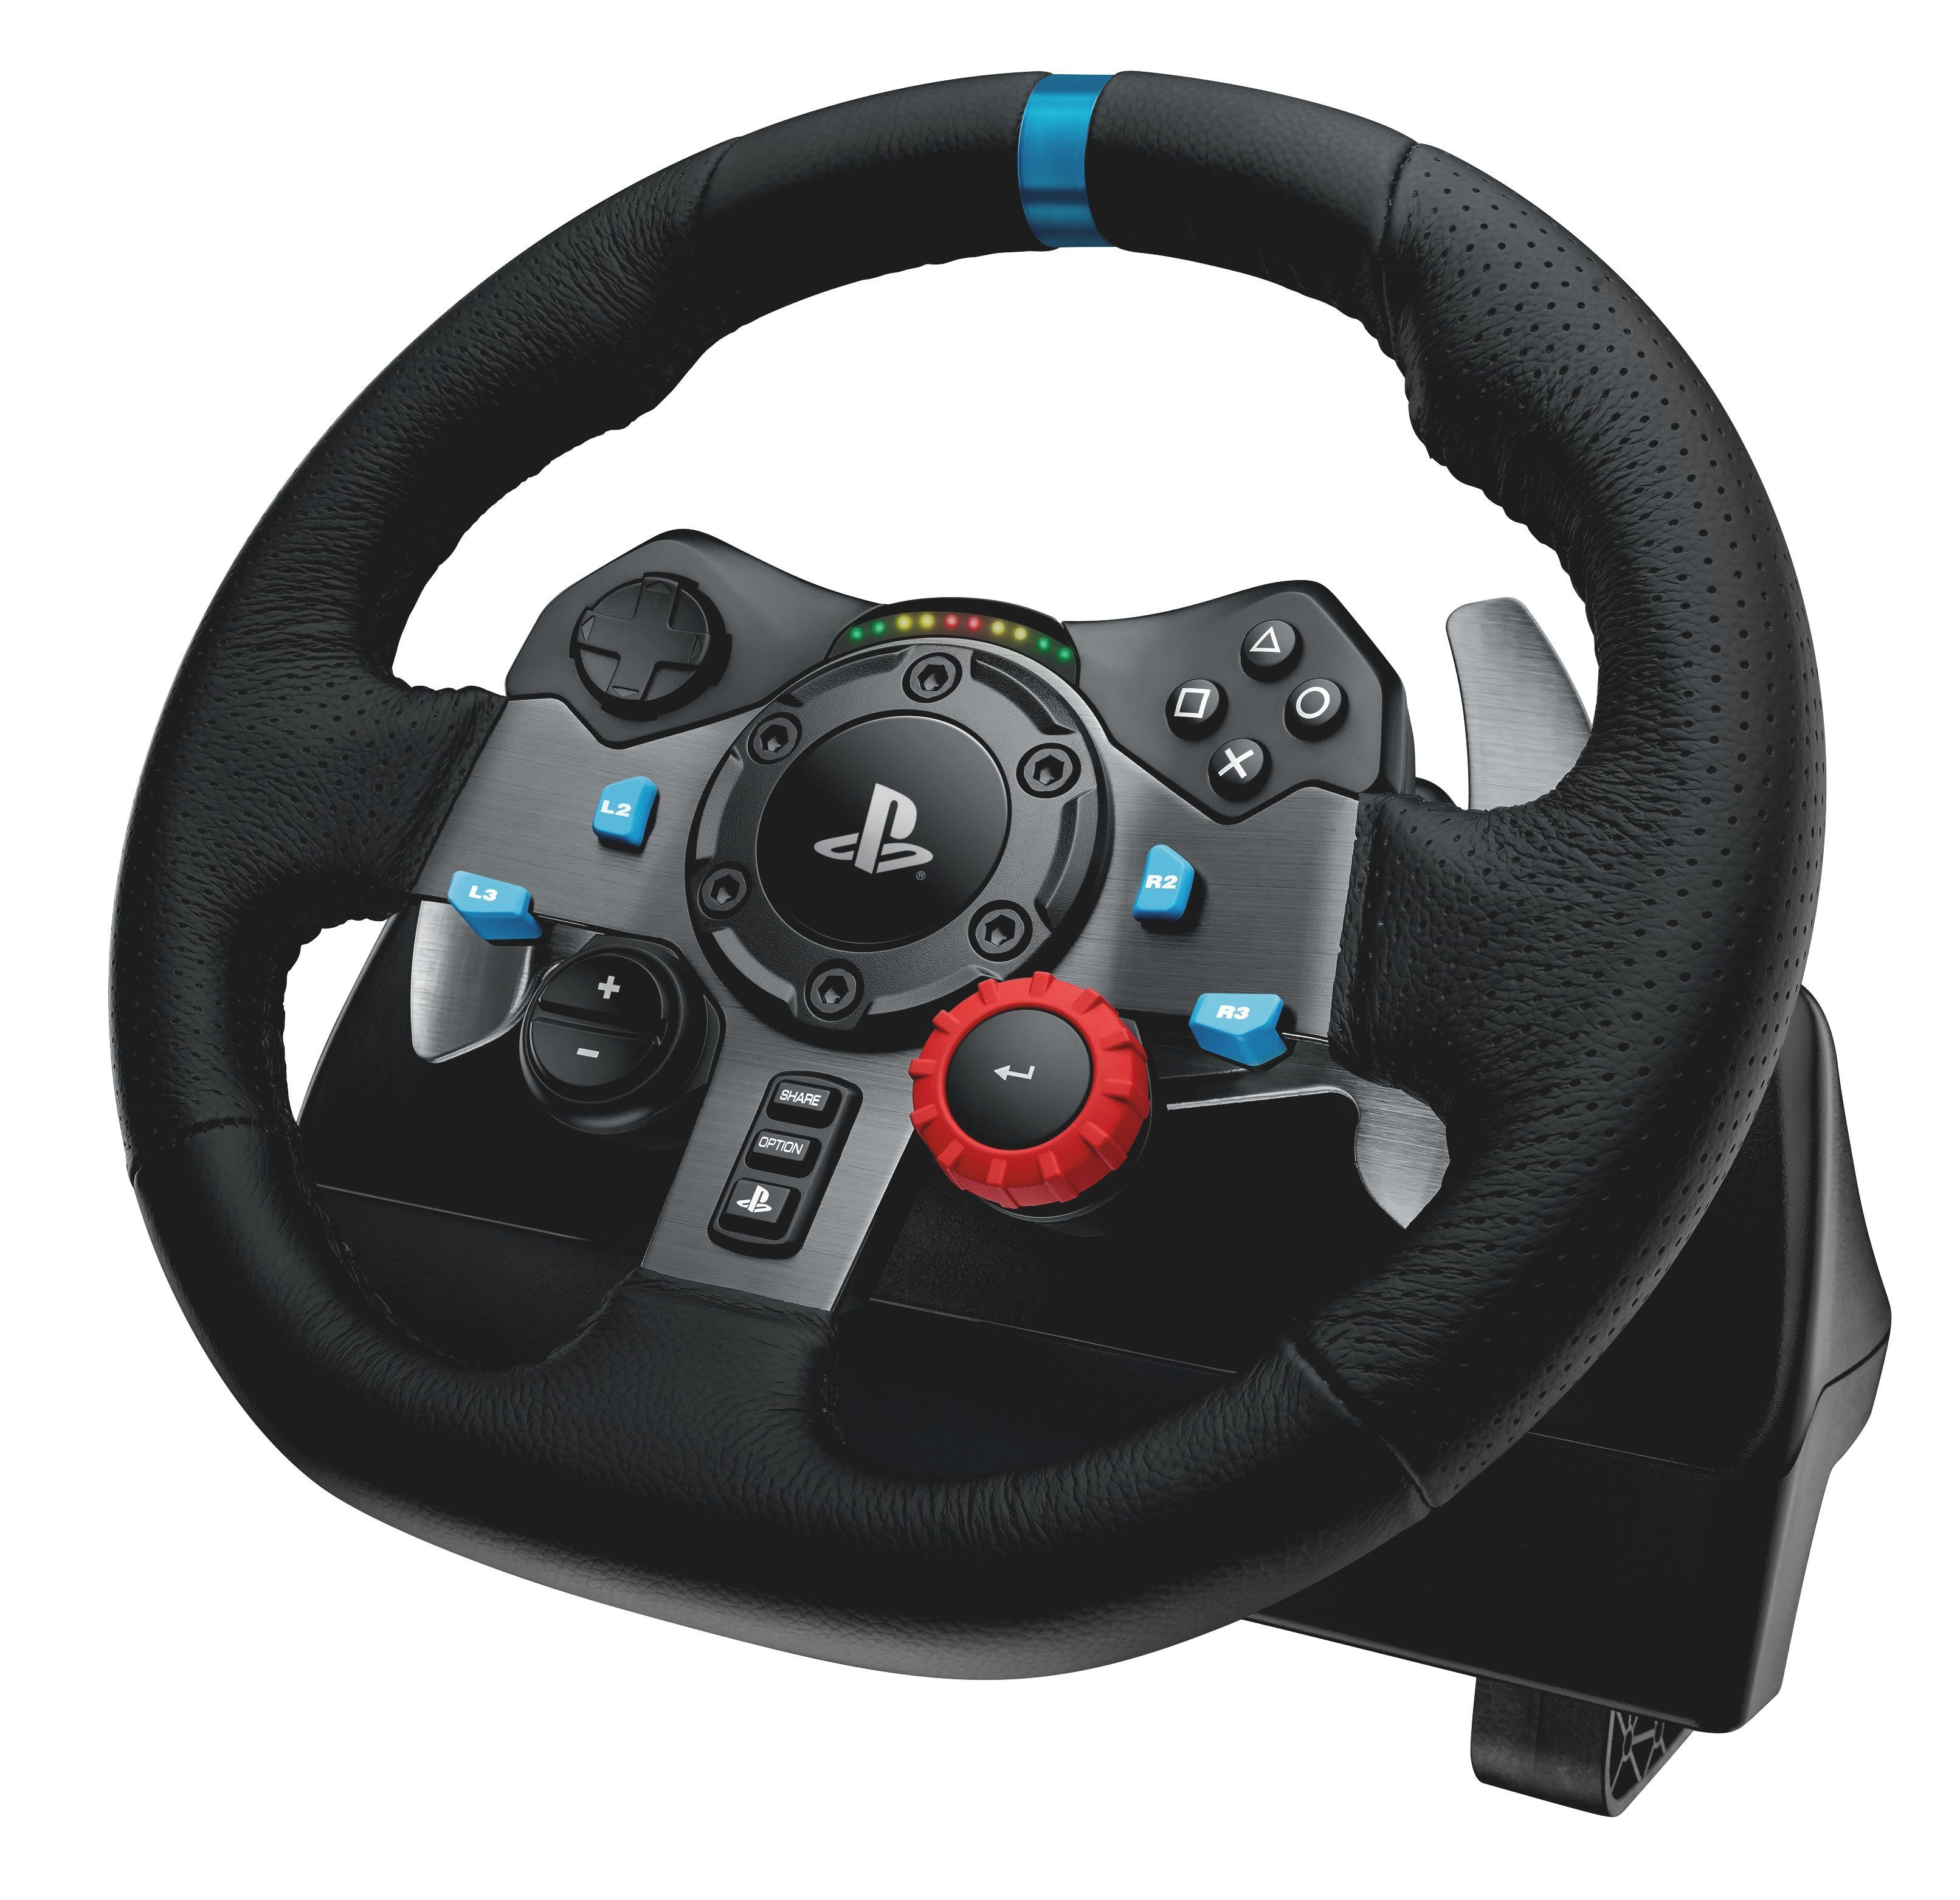 Logitech Games Gaming-Zubehör »G29 Driving Force Racing RennLenkrad 941-000112«